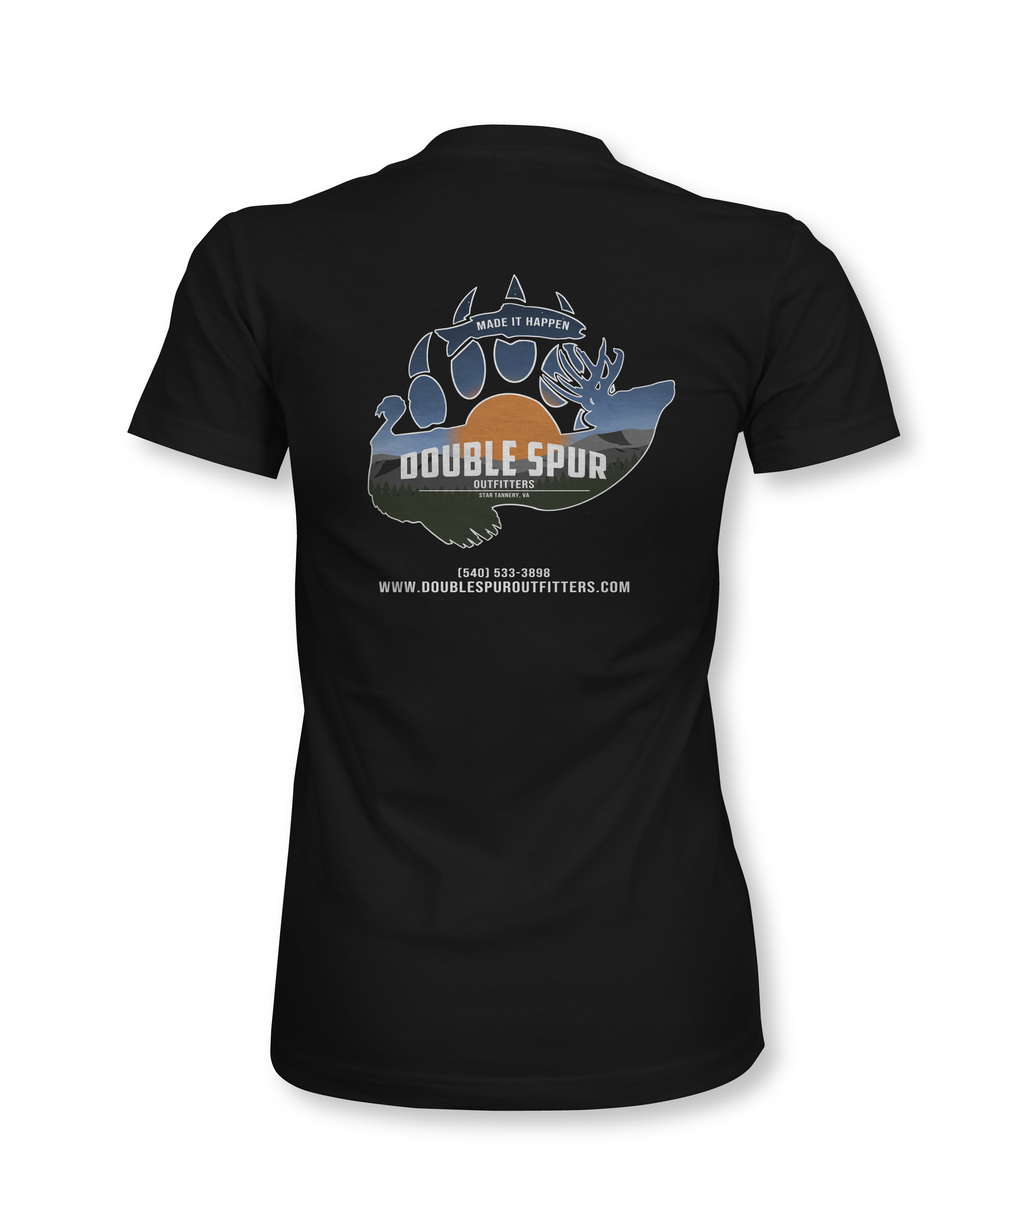 Double Spur Outfitters - Custom - Women's Shirt - Proper Patriot